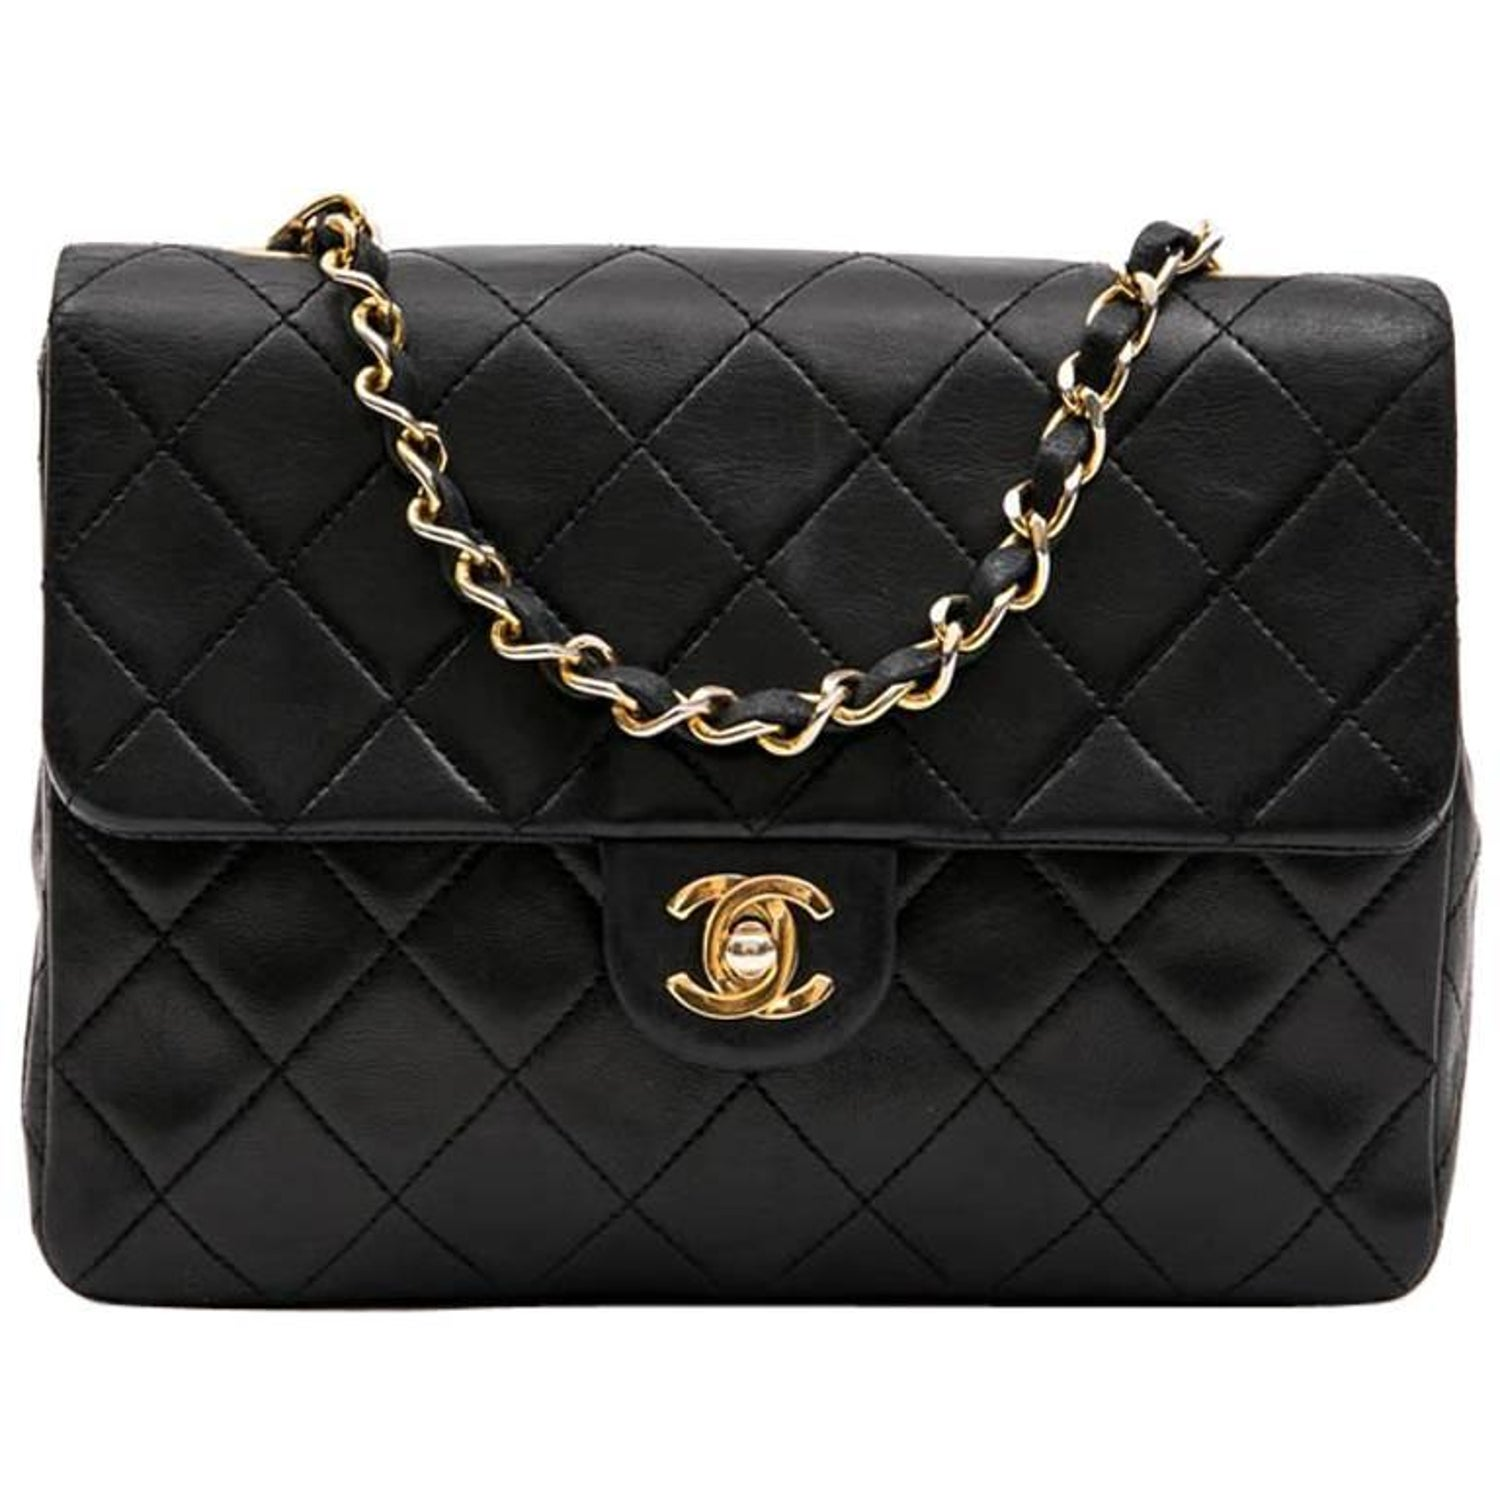 bb198febb5f0 CHANEL Vintage Mini Bag in Black Quilted Lambskin Leather at 1stdibs